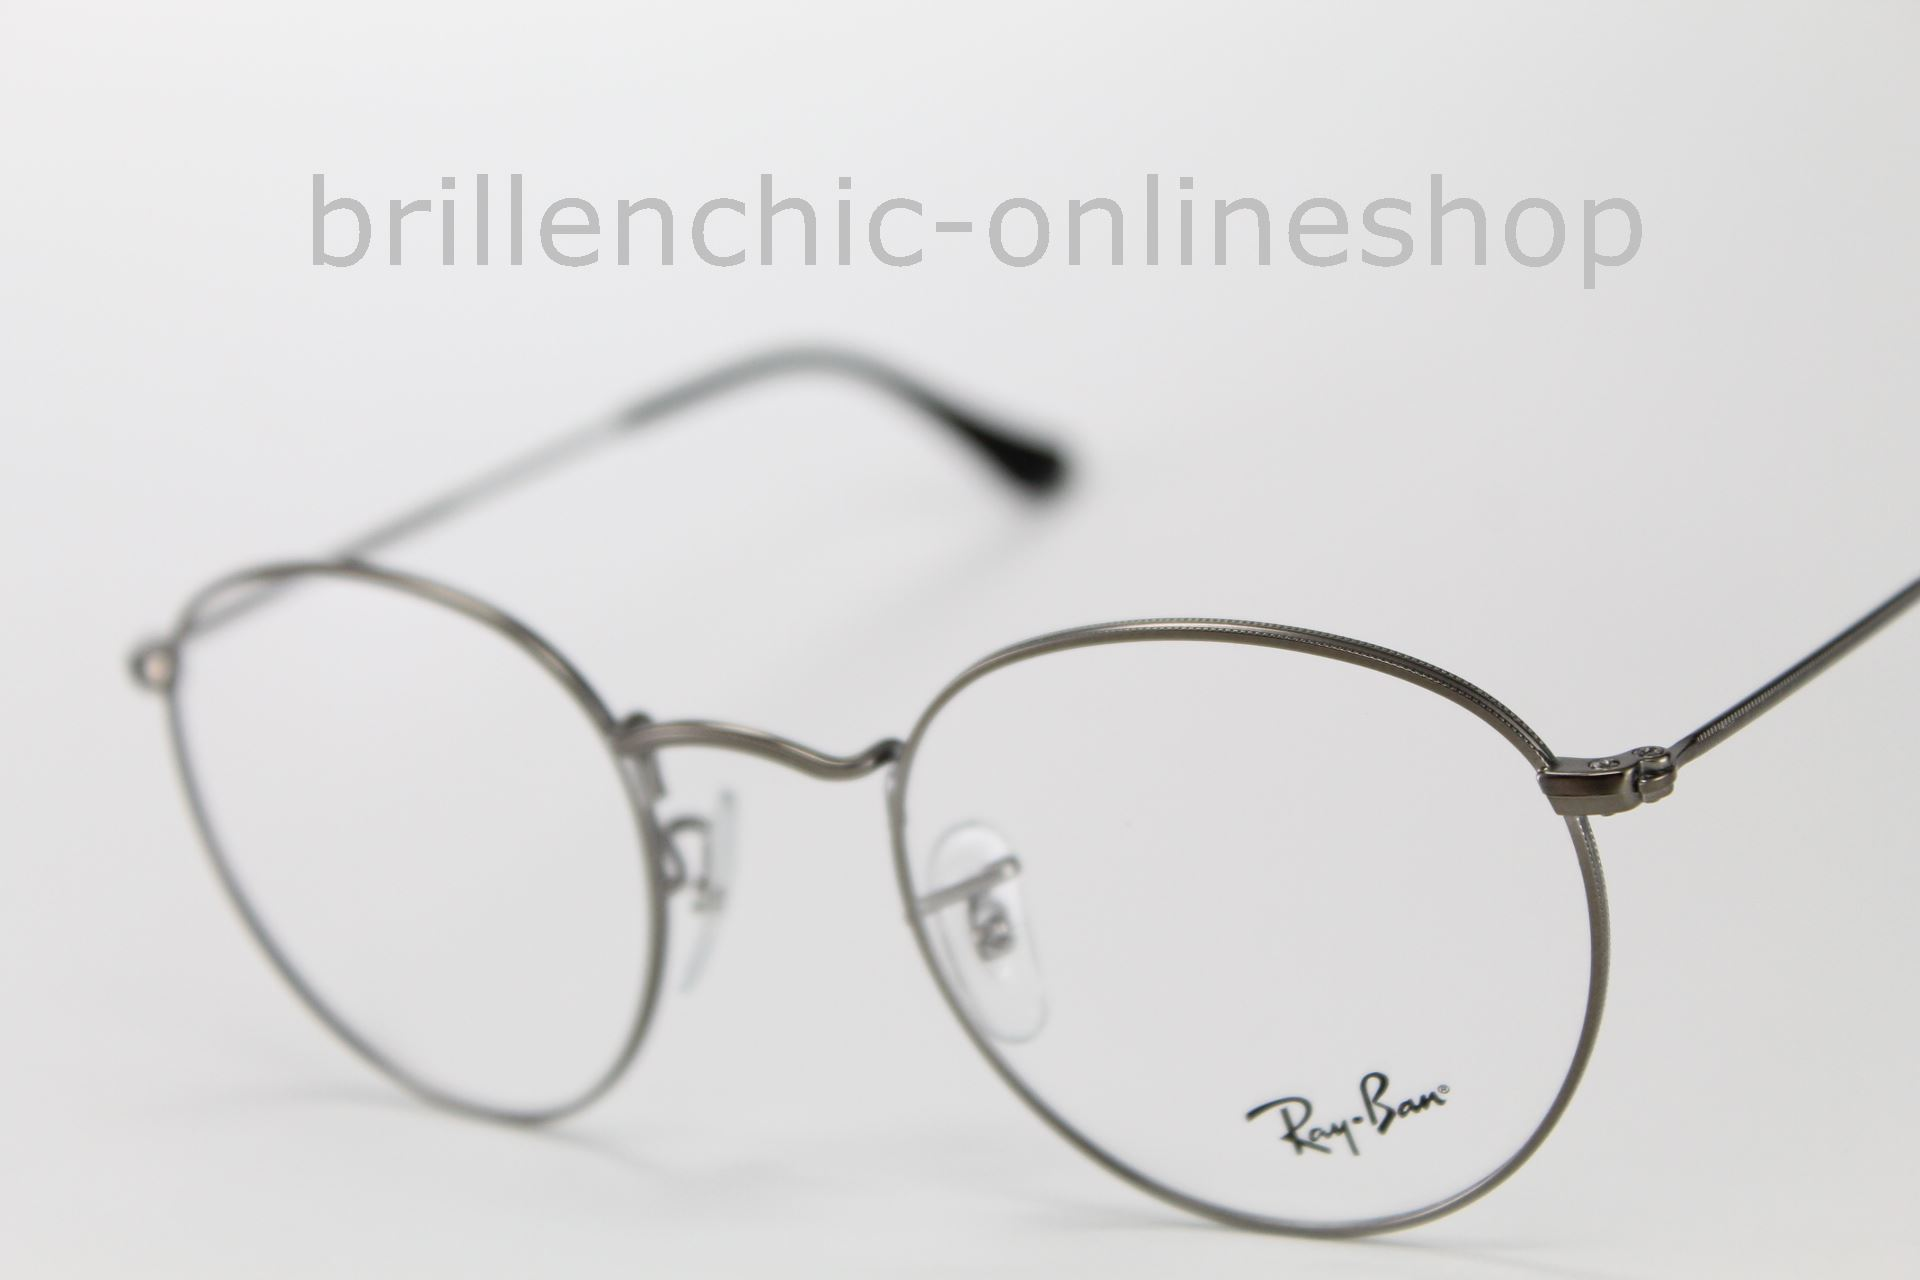 ec776e33e1073a Brillenchic-onlineshop in Berlin - Ray Ban RB 3447V 3447 2620 ROUND ...